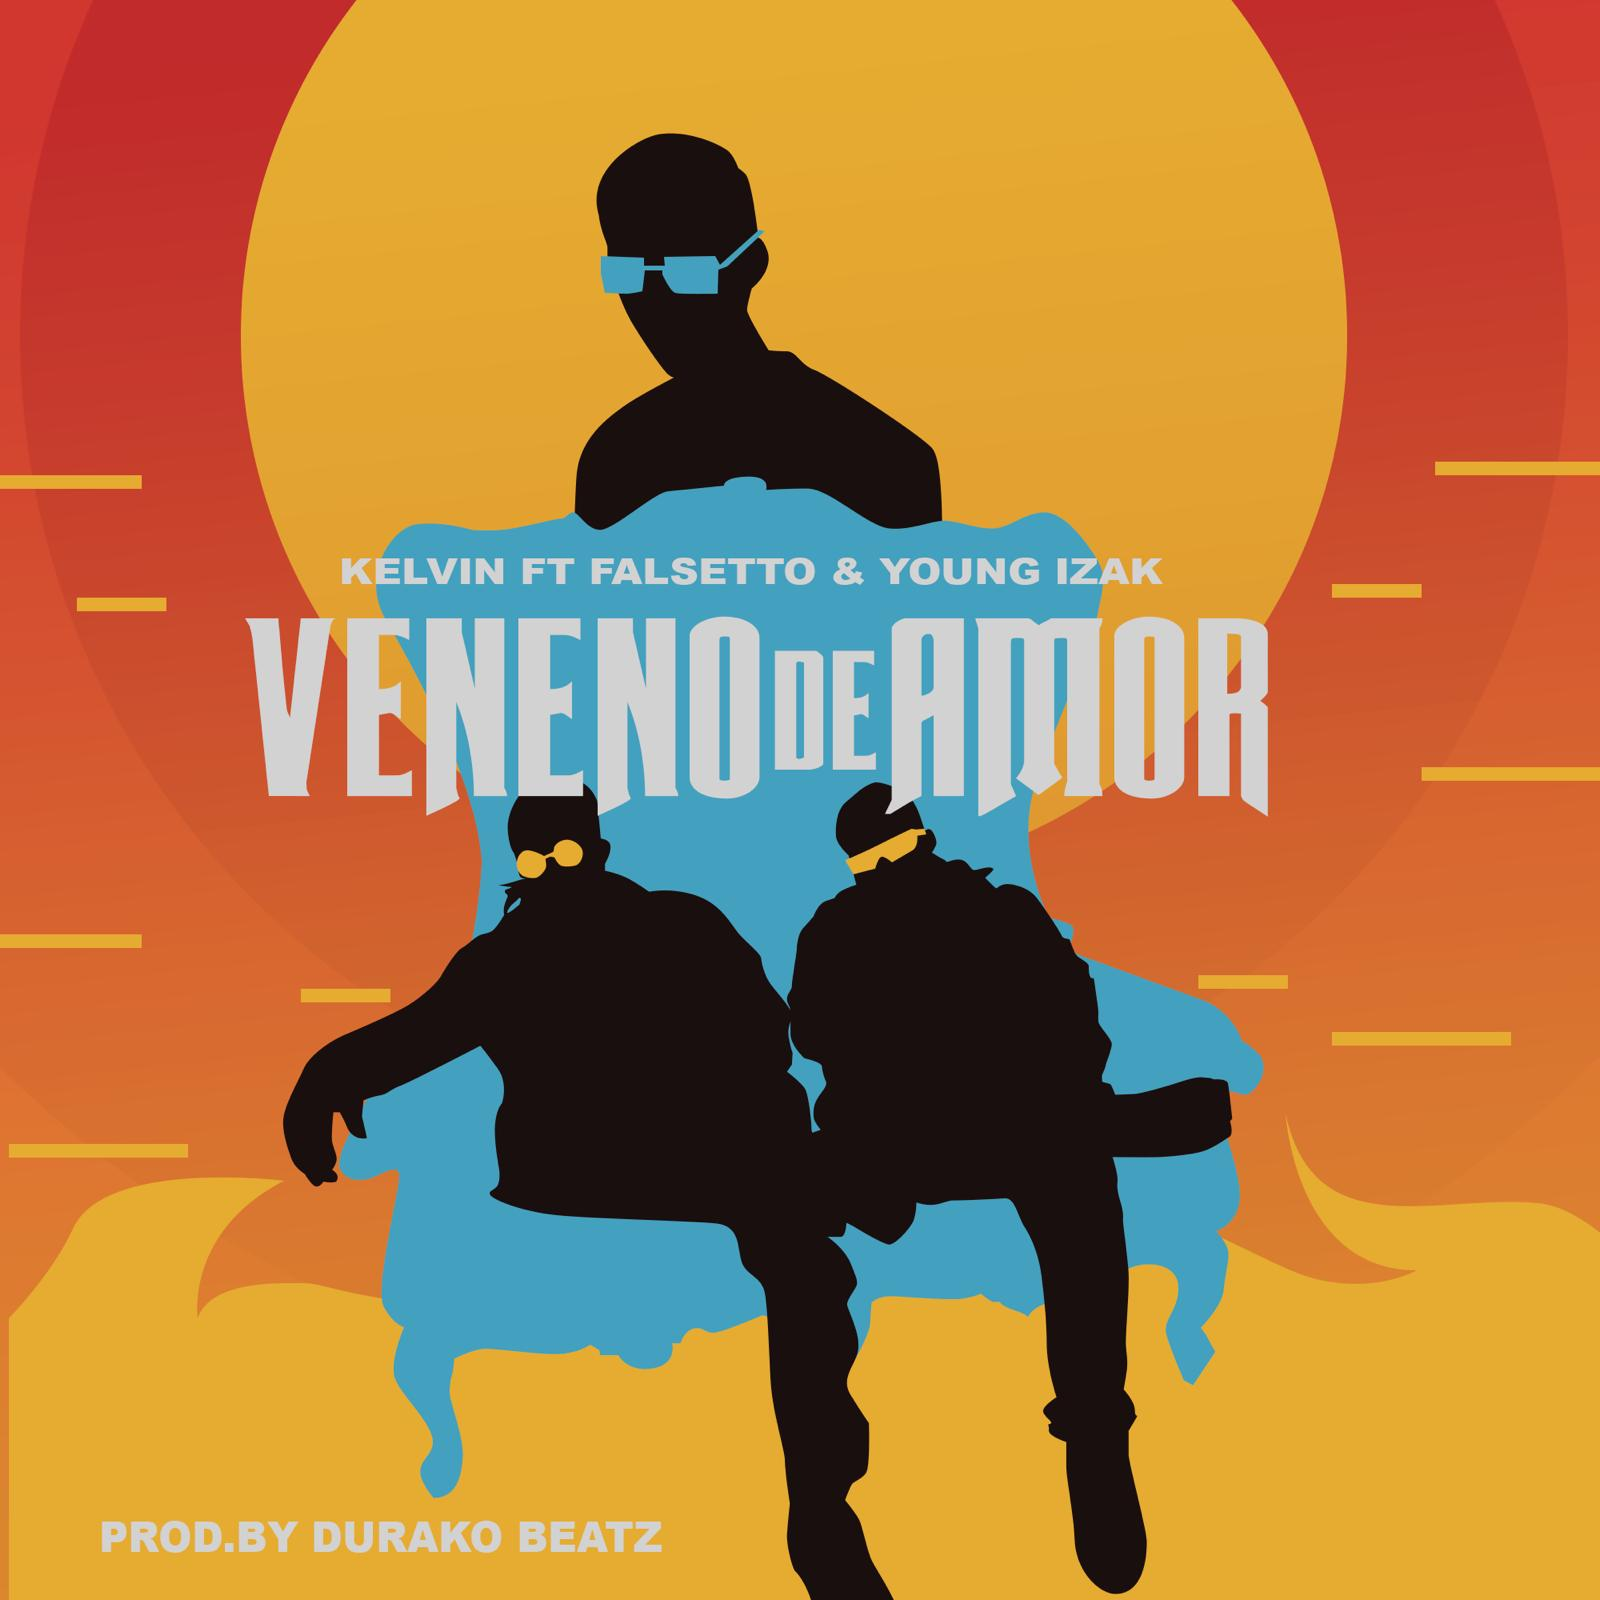 Kevin ft Falsetto Y Young Izak - Veneno De Amor